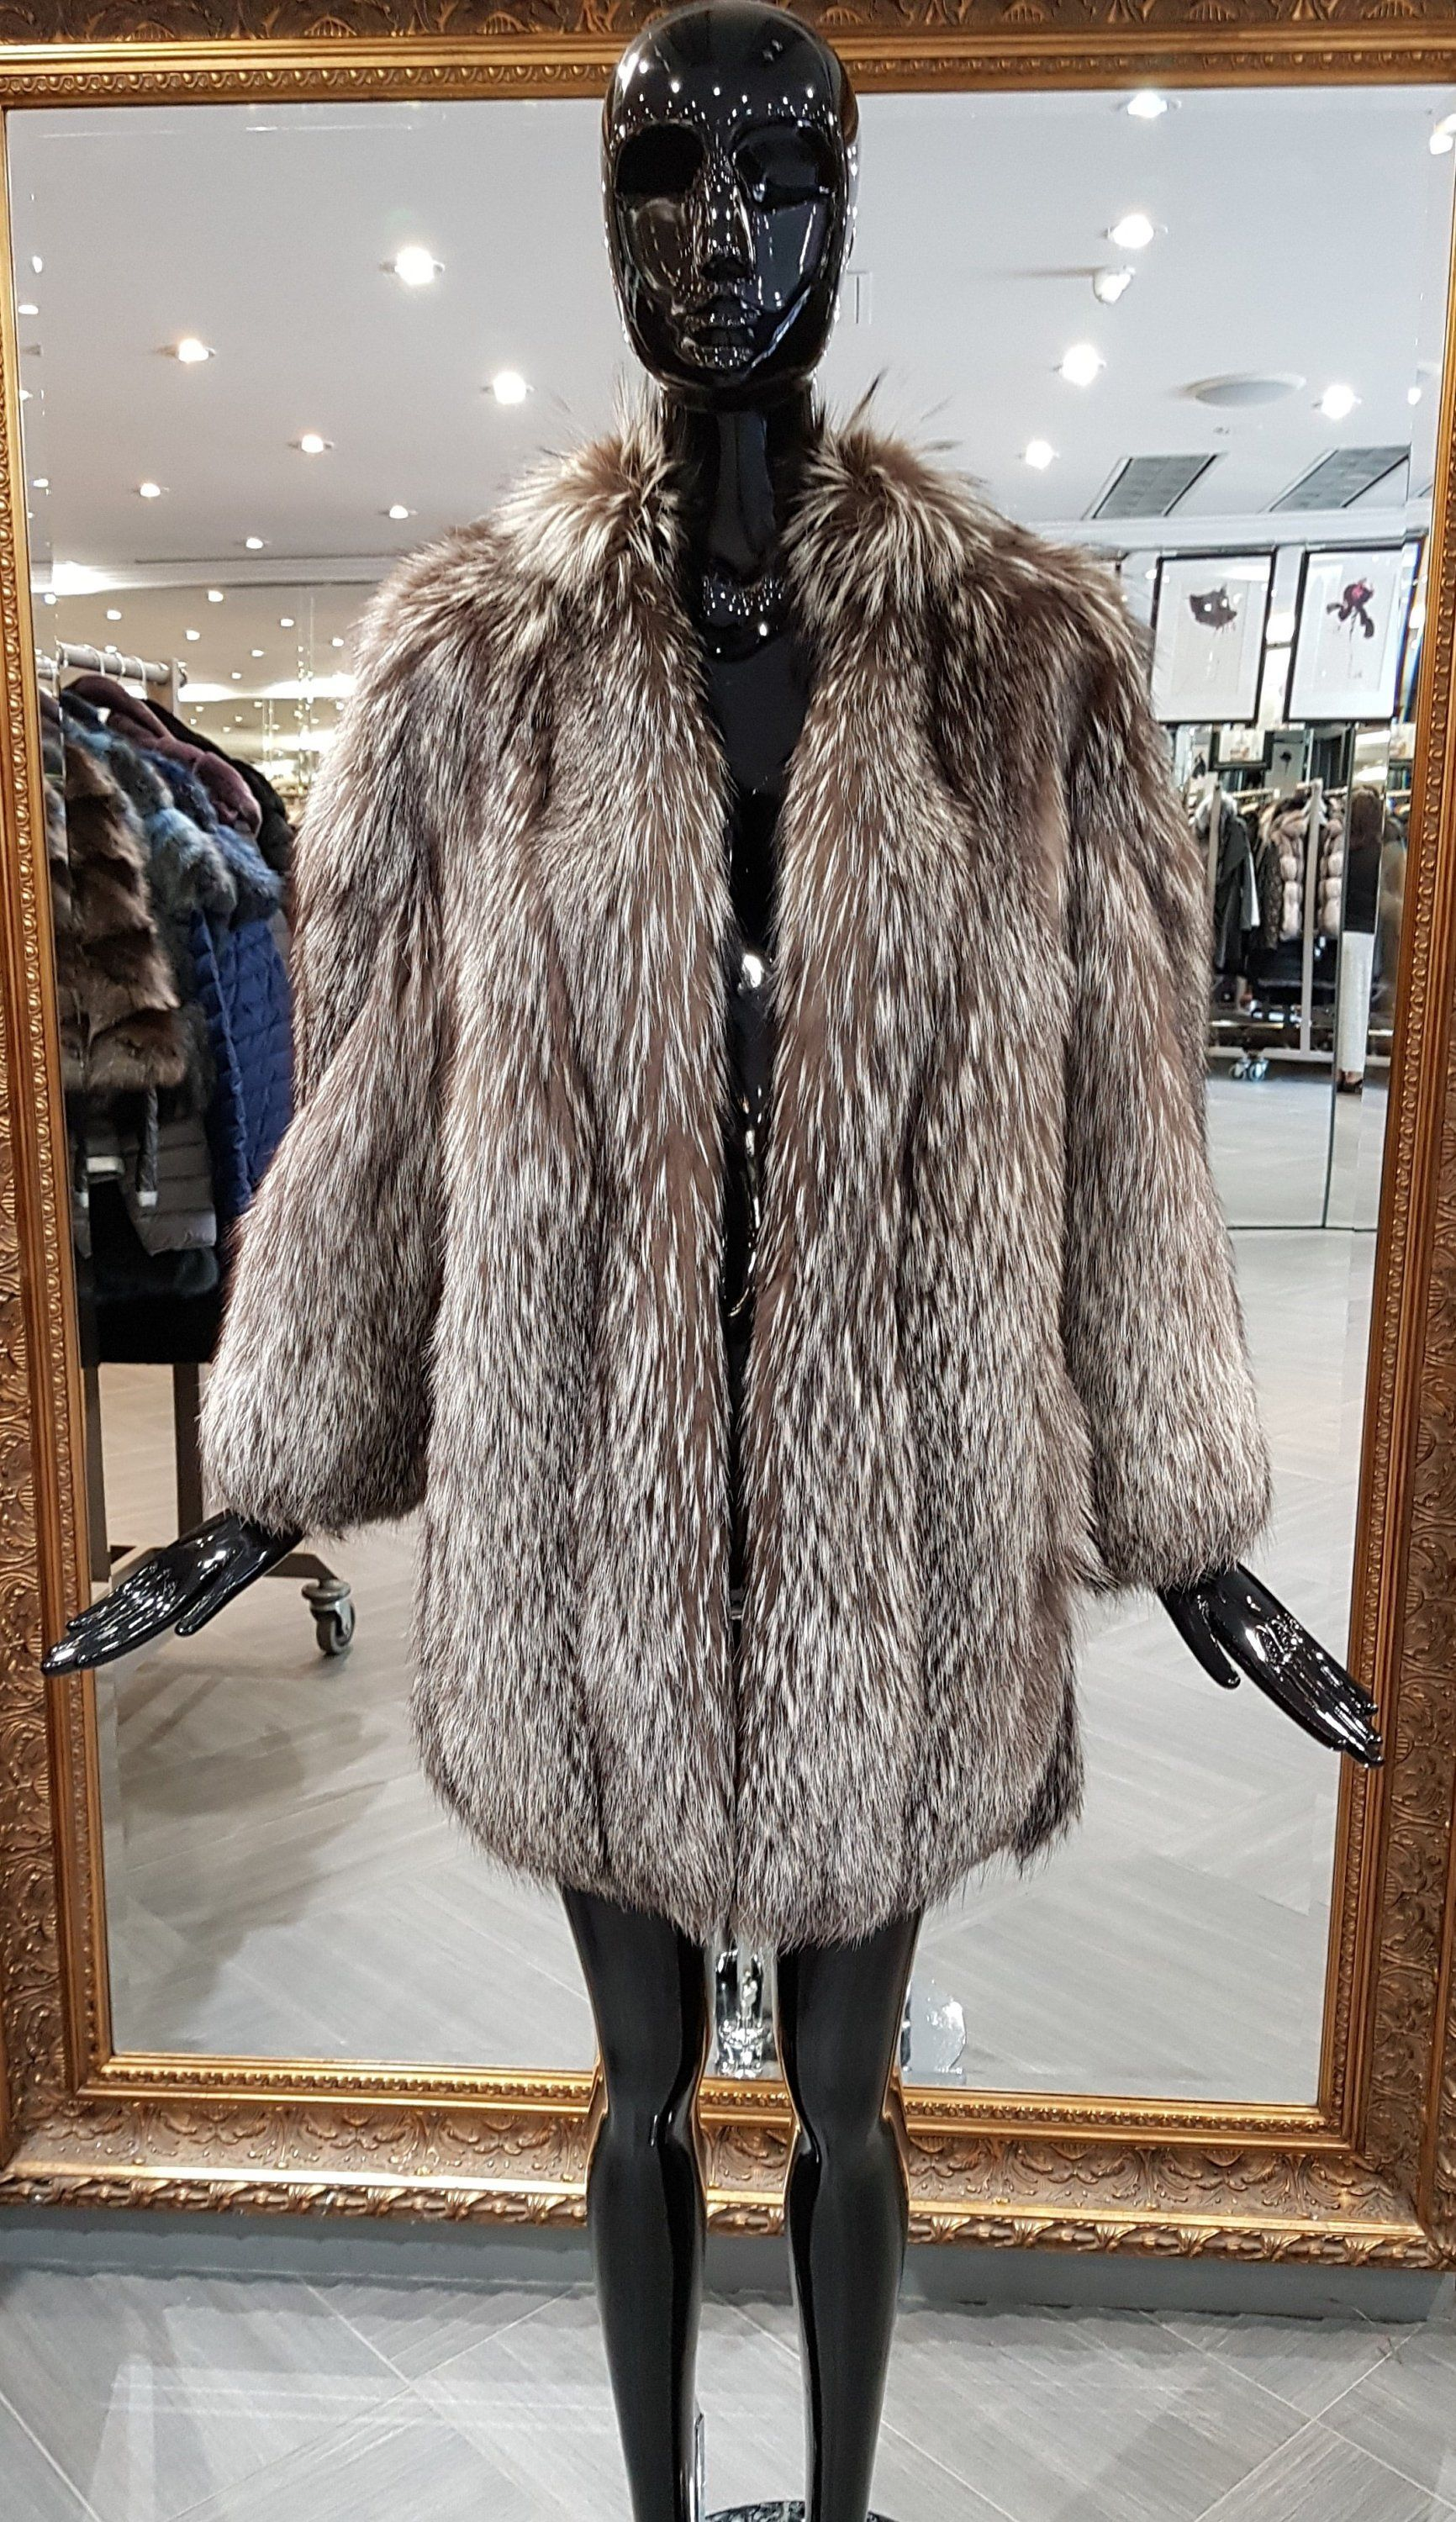 07b43443272d 90s Vintage Feathered Silver Fox Jacket Women's 10 12 https://etsy.me